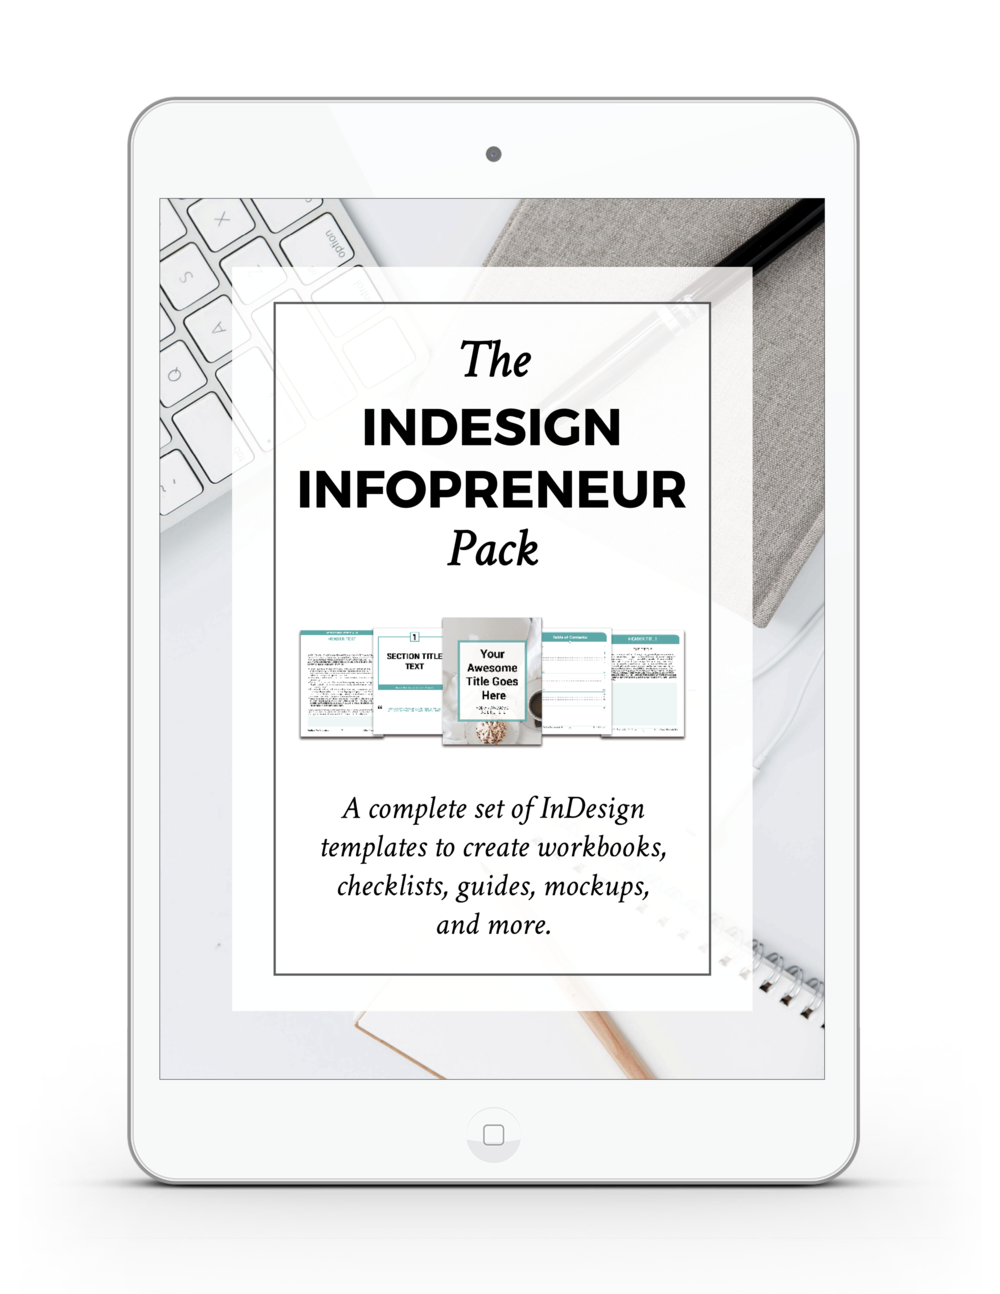 The InDesign InfoPreneur Product Pack